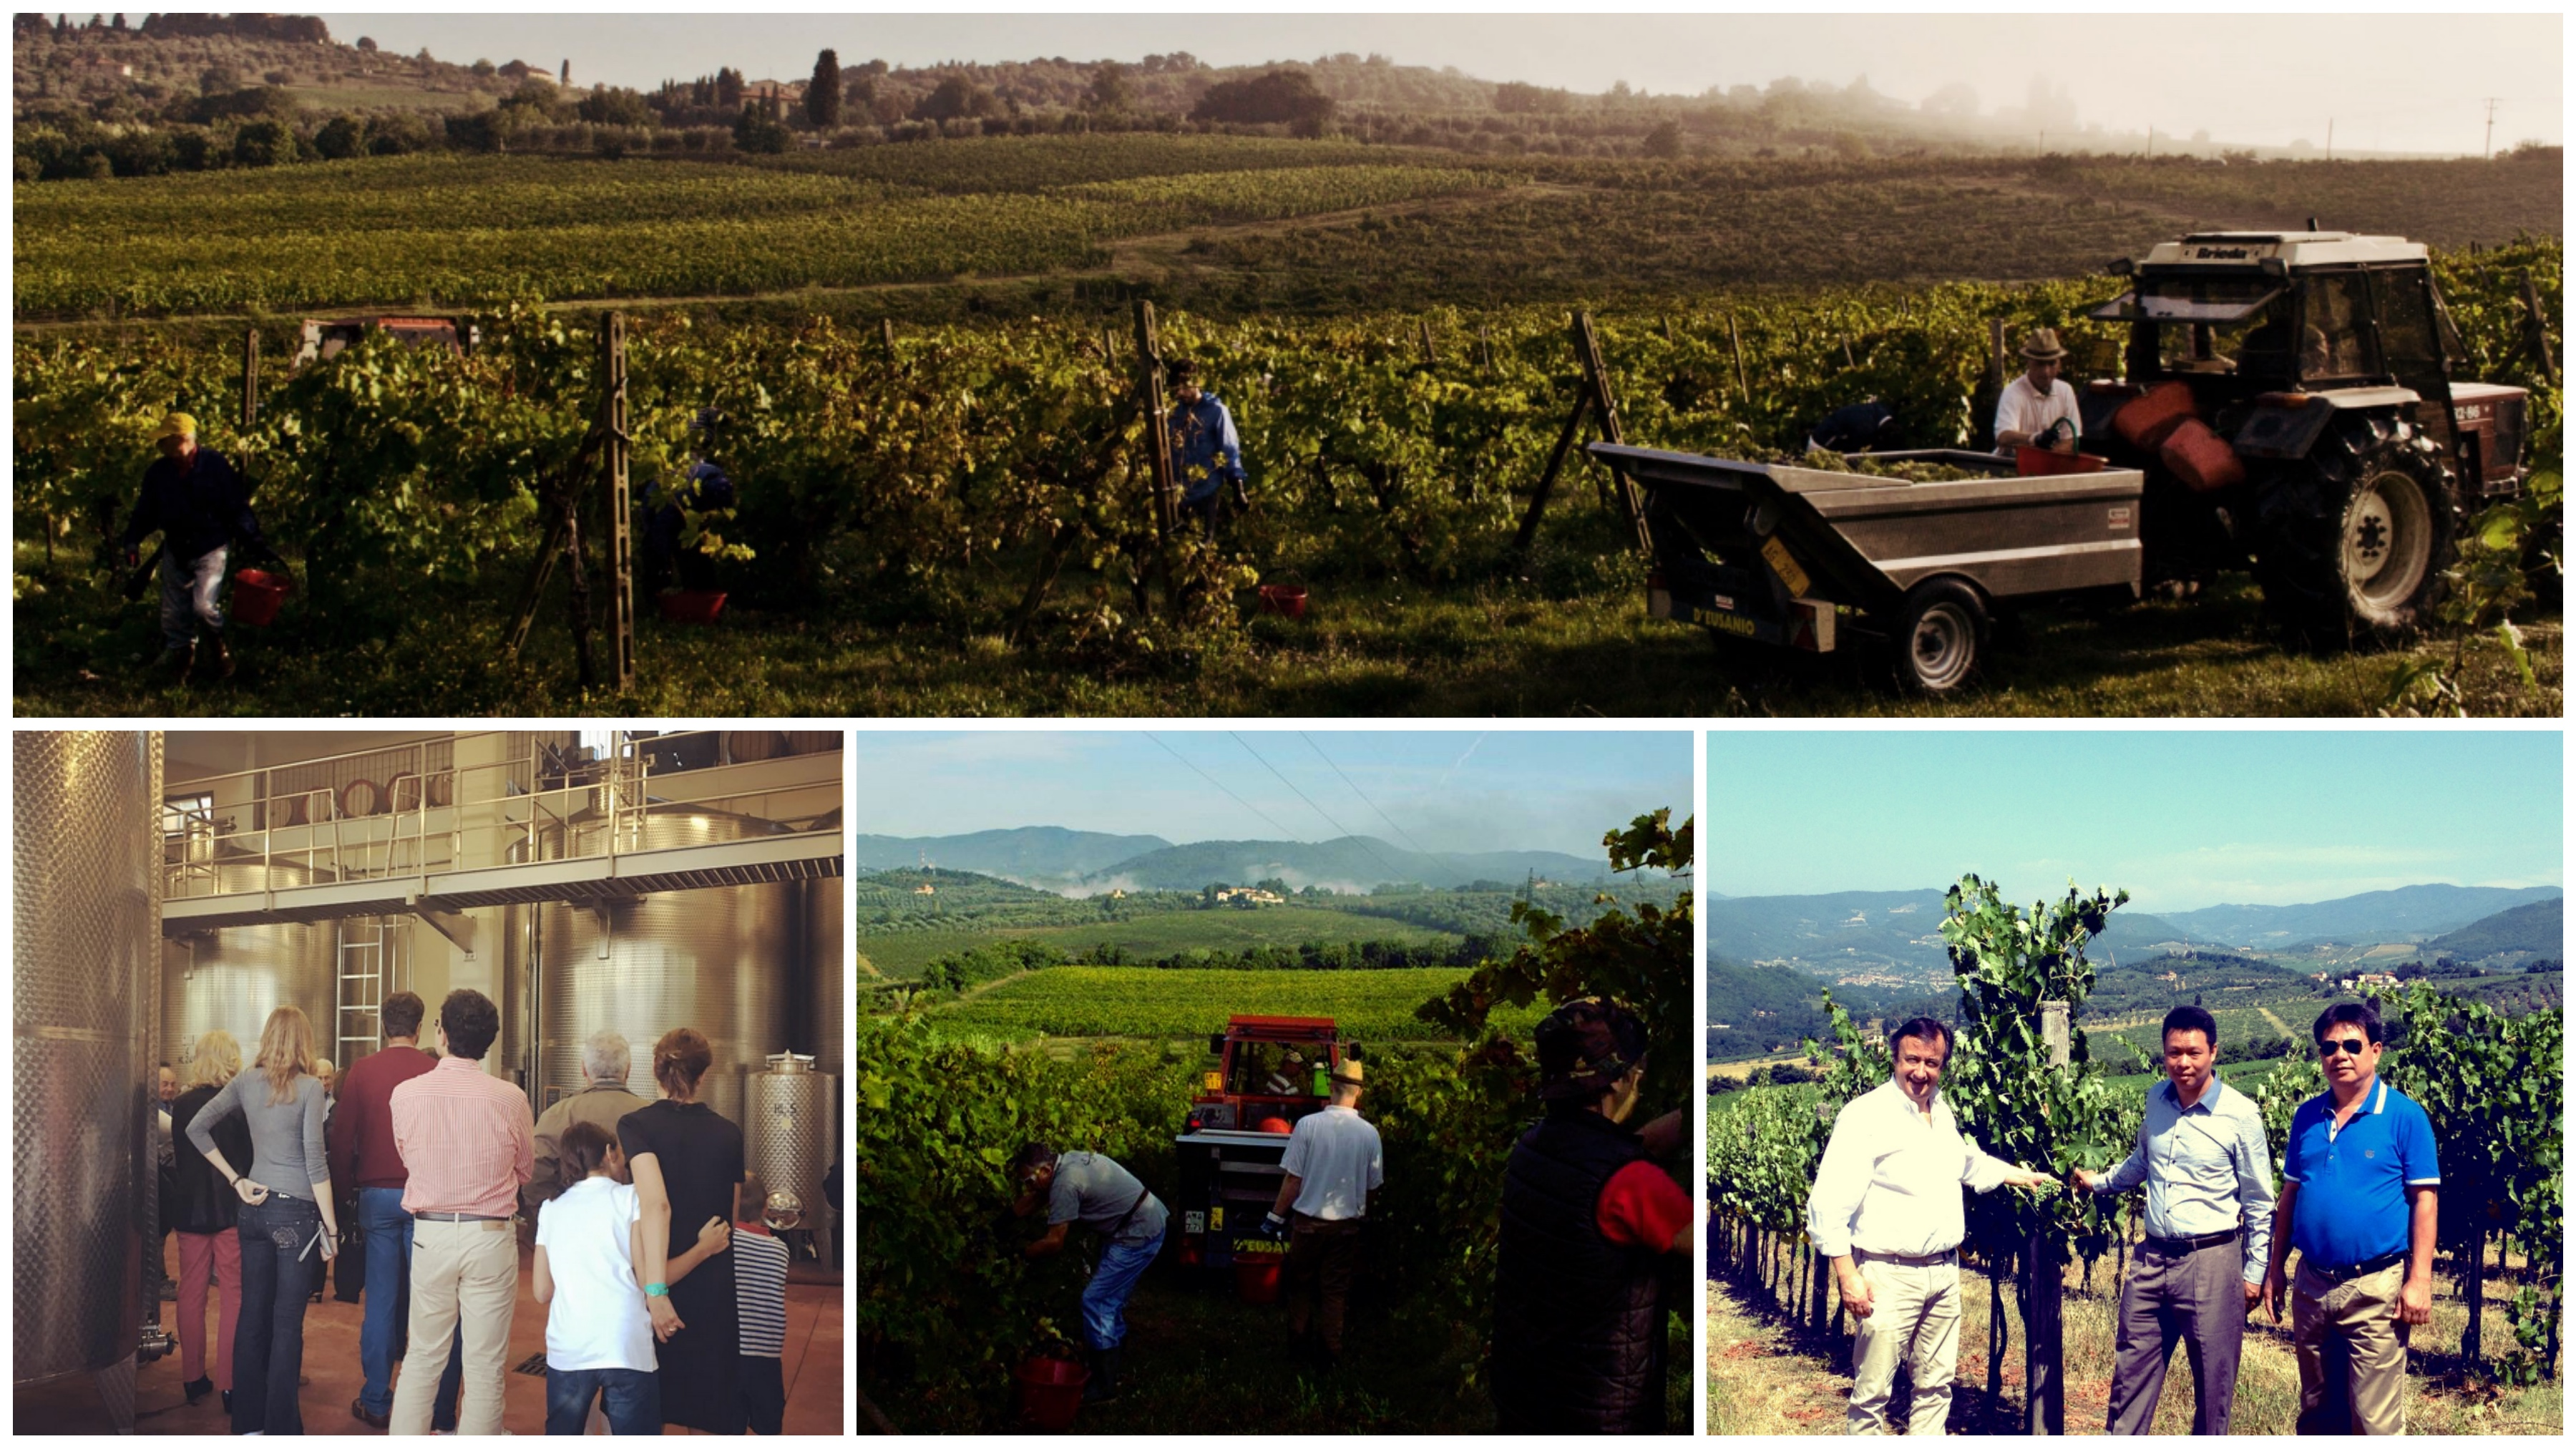 vendemmia 2016 collage visita